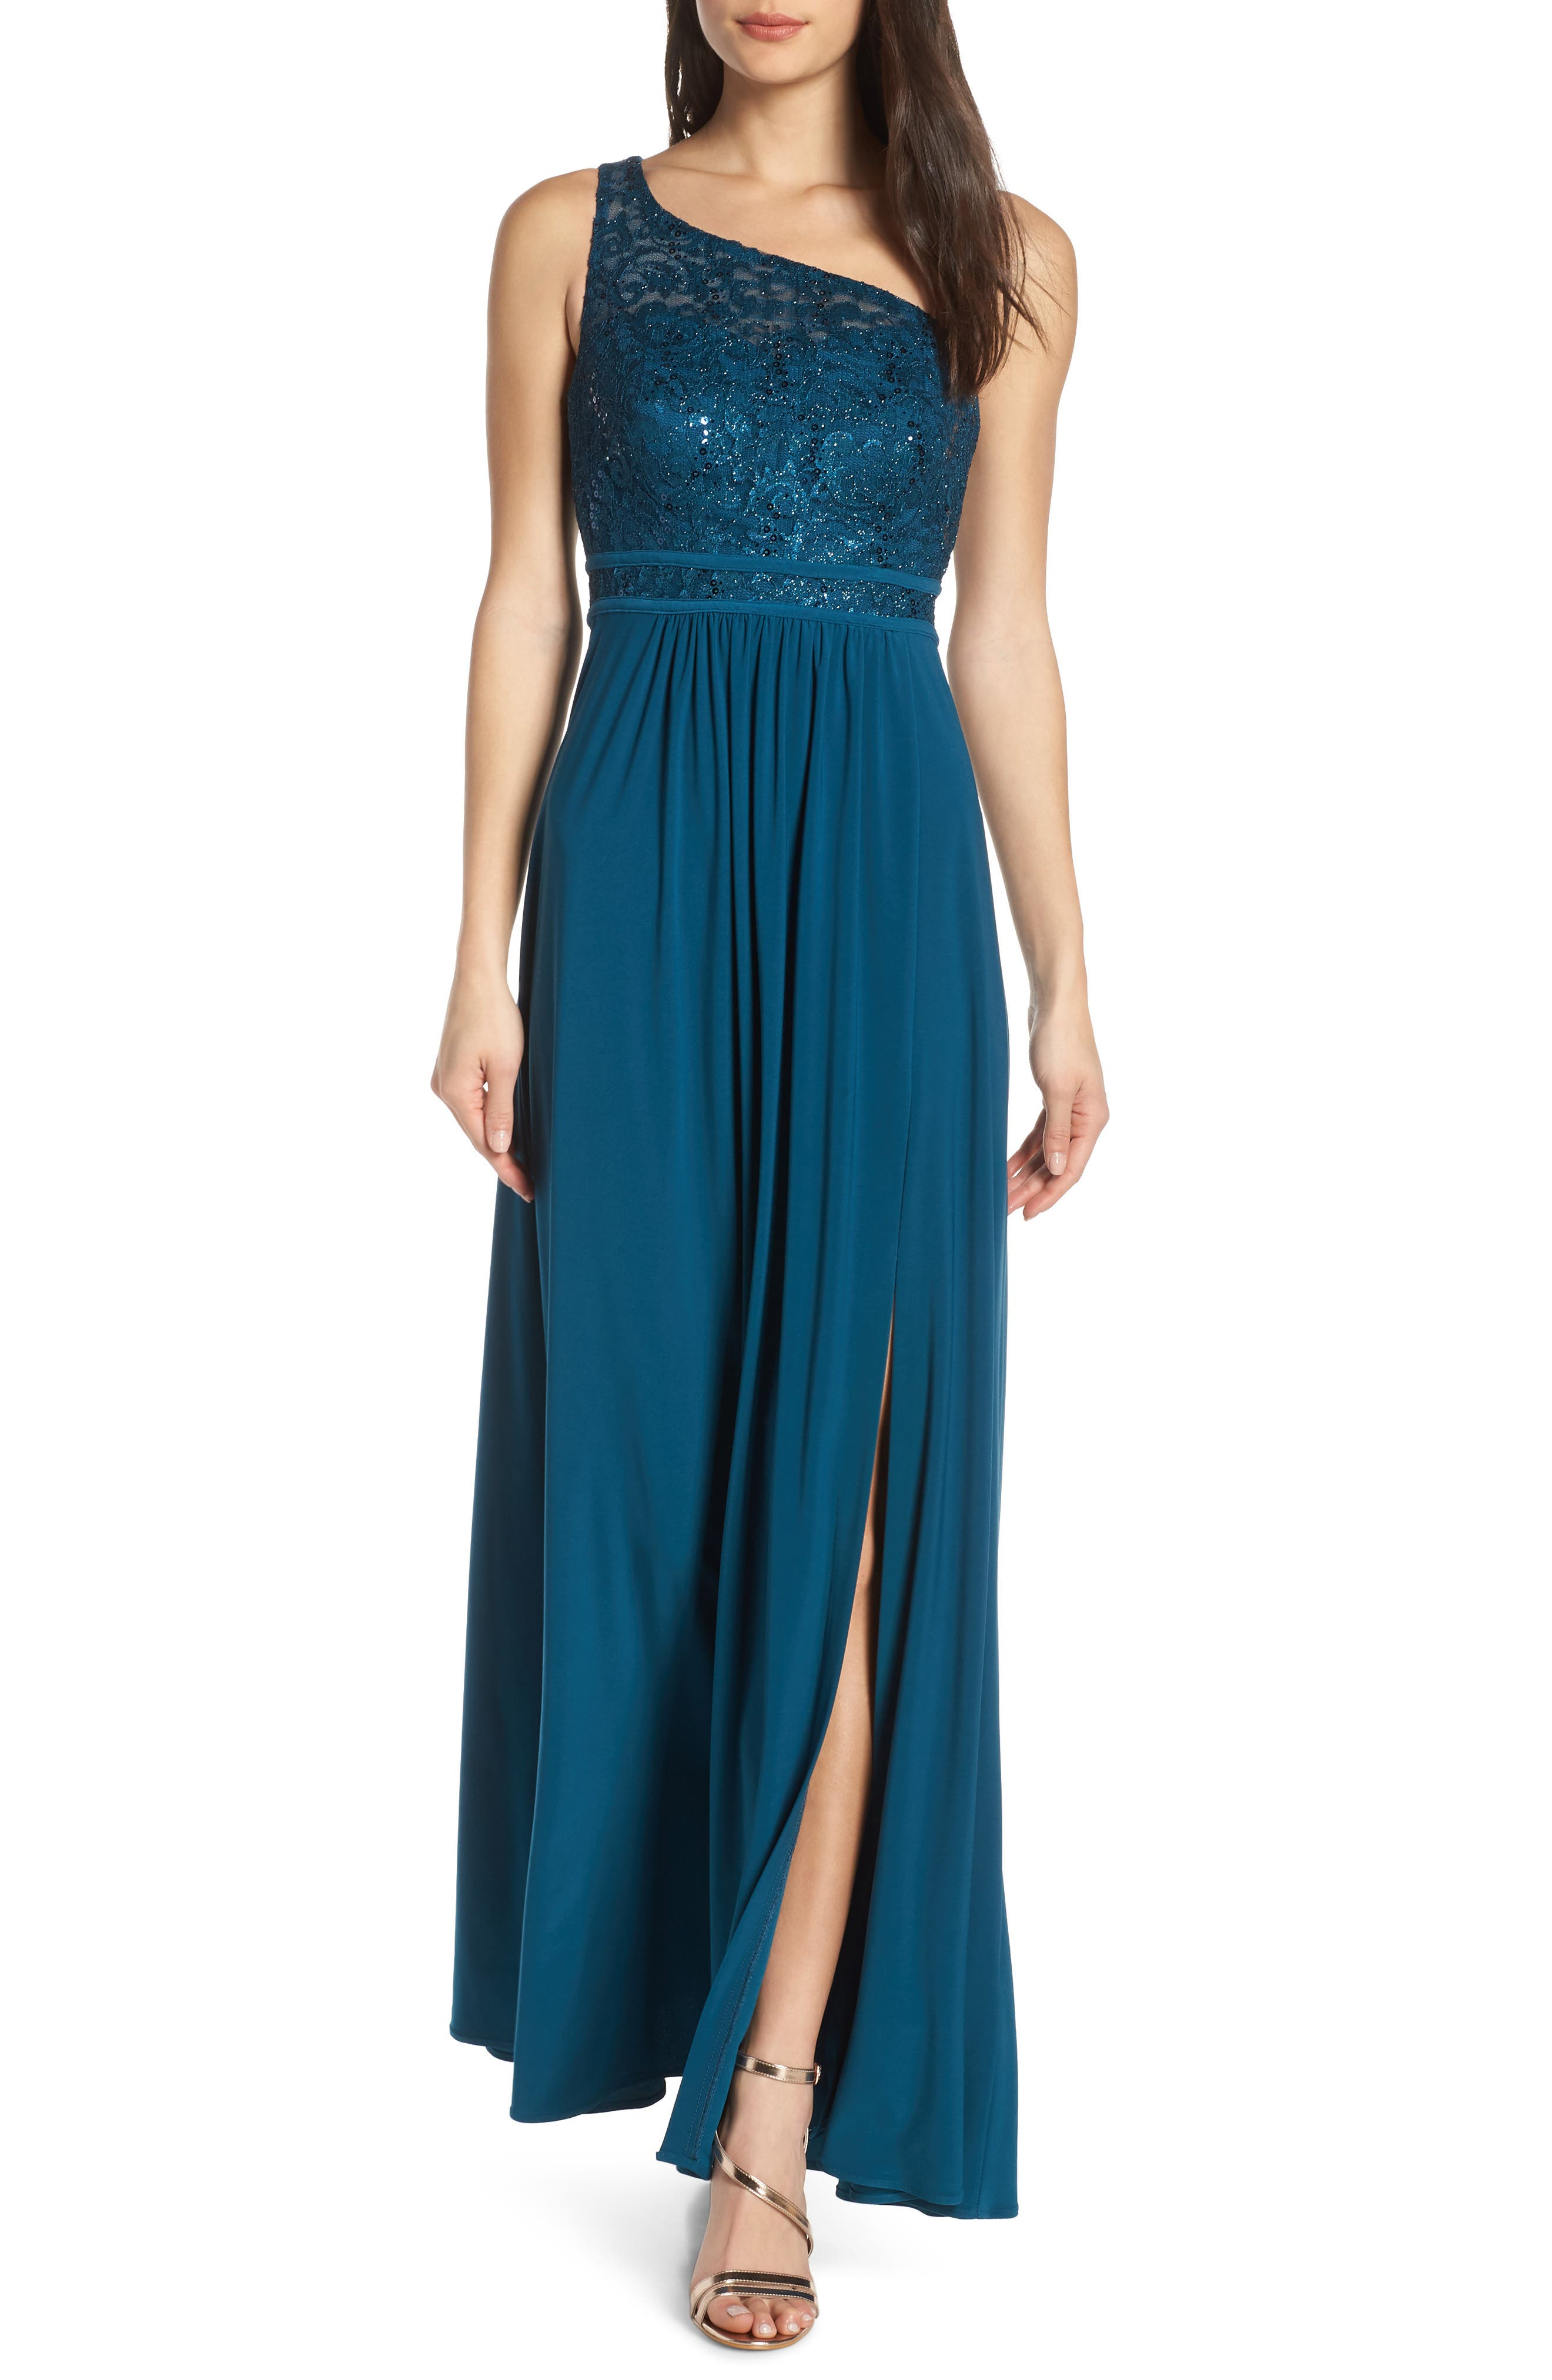 Morgan & Co. One Shoulder Lace Bodice Evening Dress, Blue/green